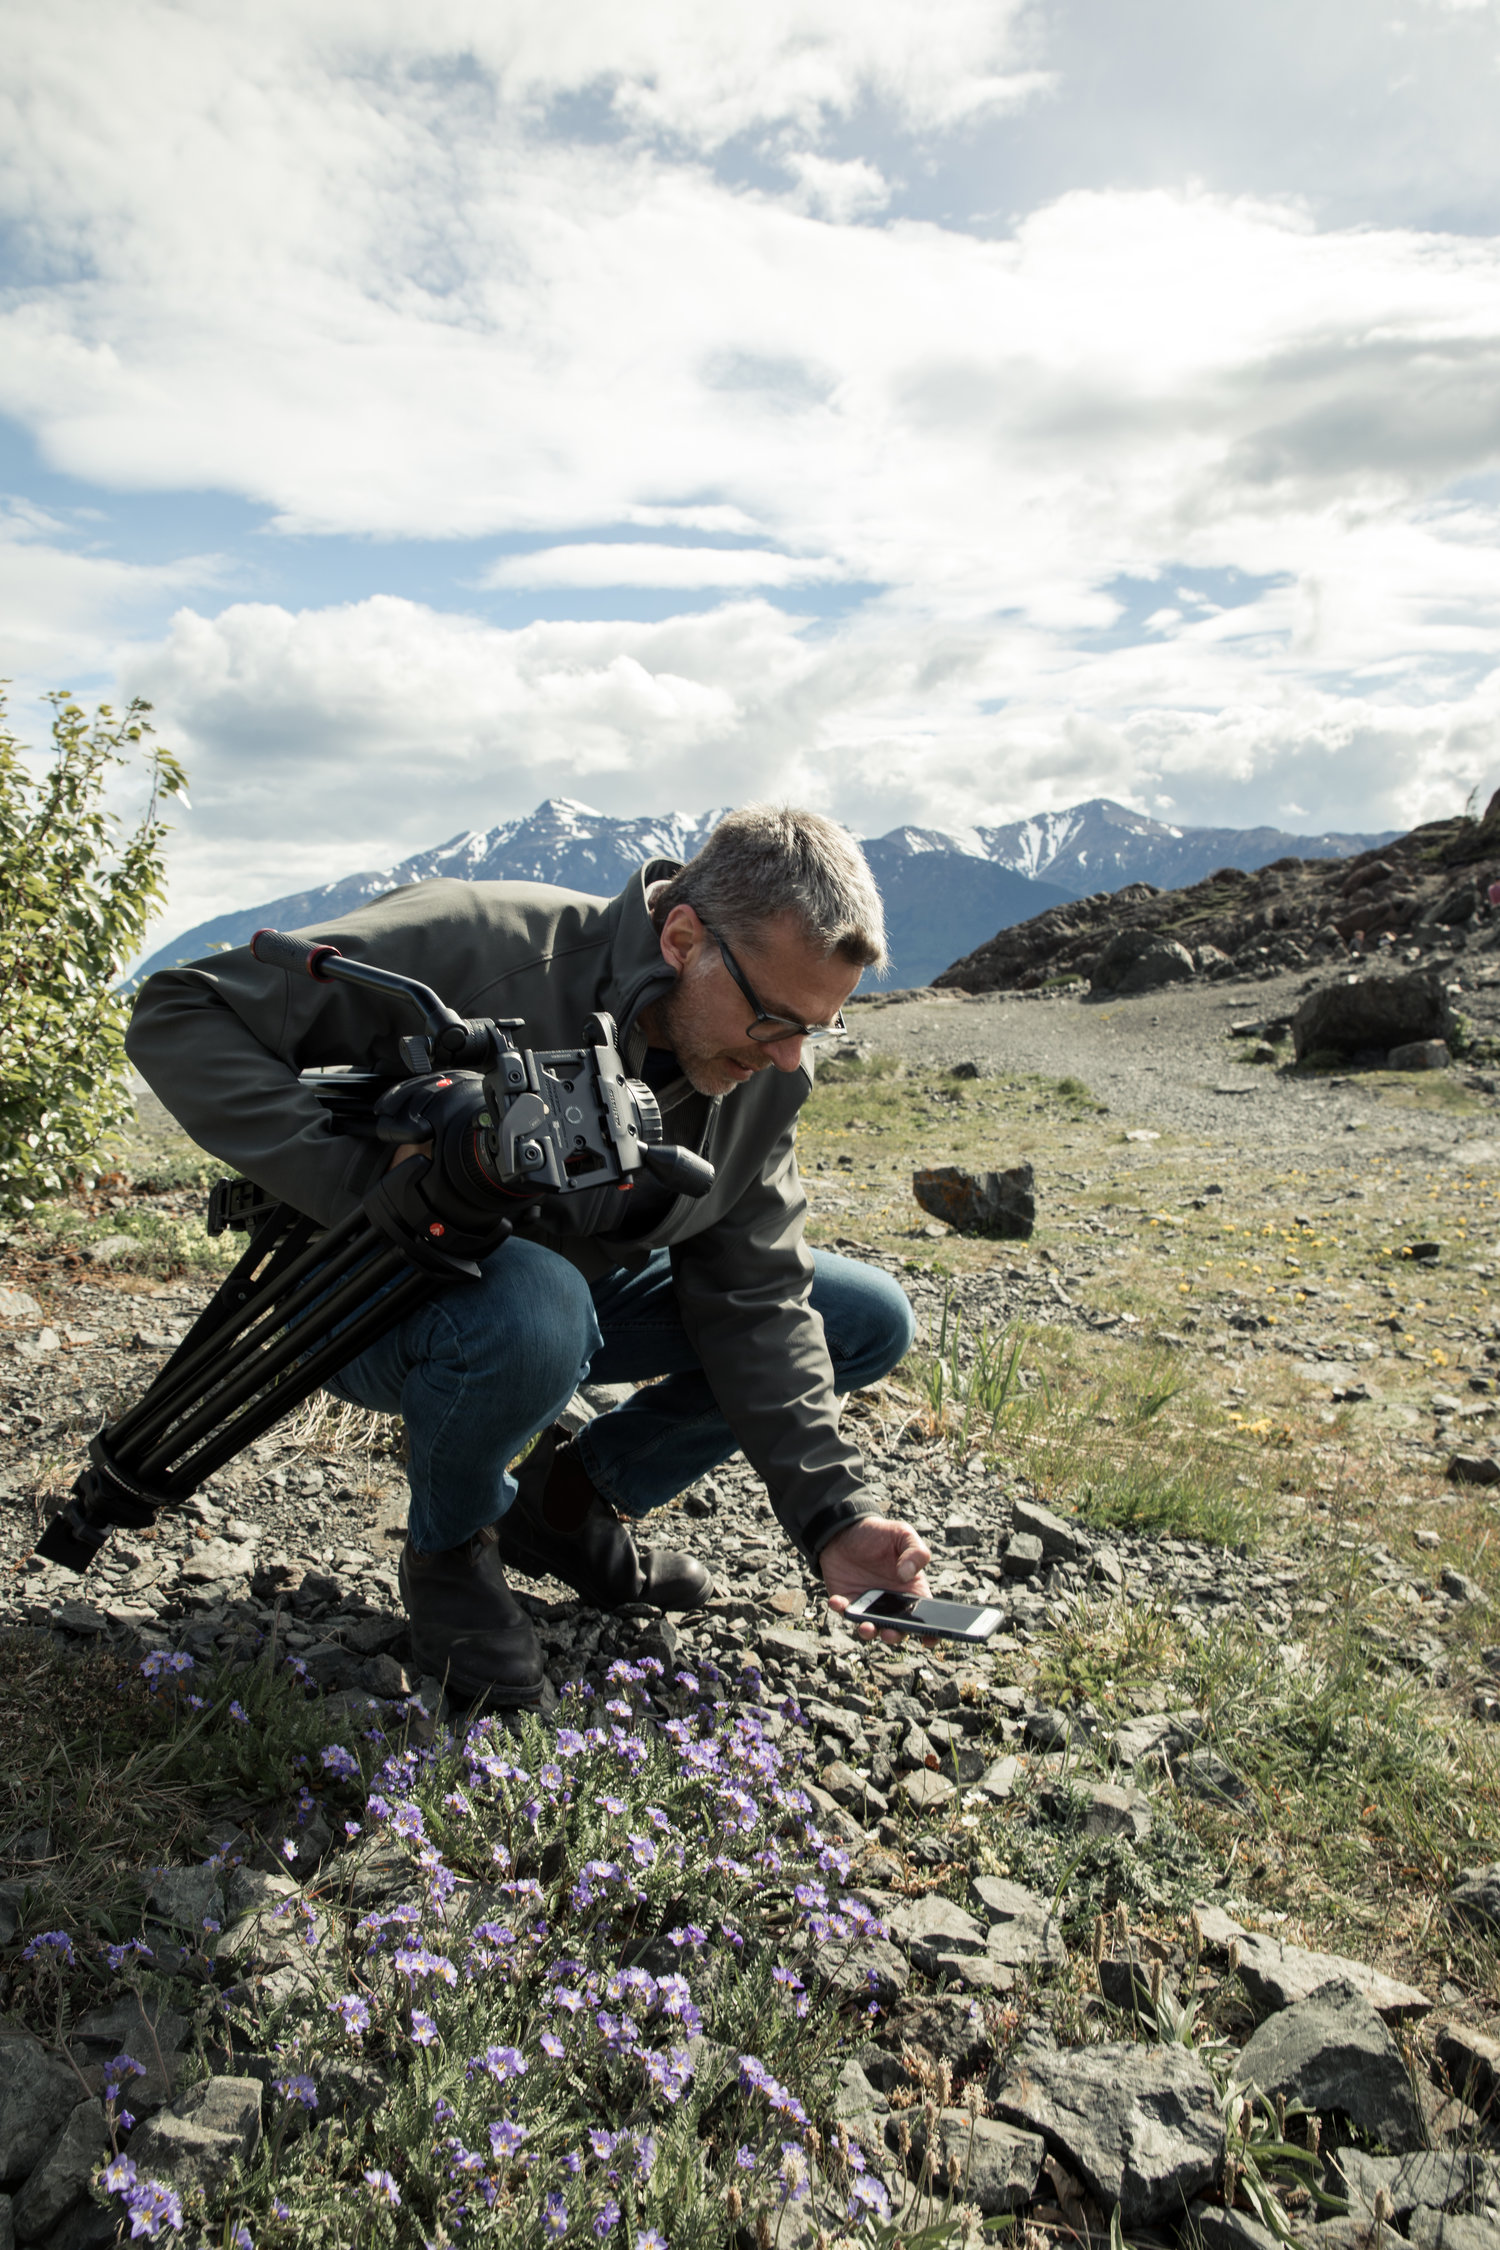 On location near Anchorage, Alaska. Photo: Jafar Fallahi.